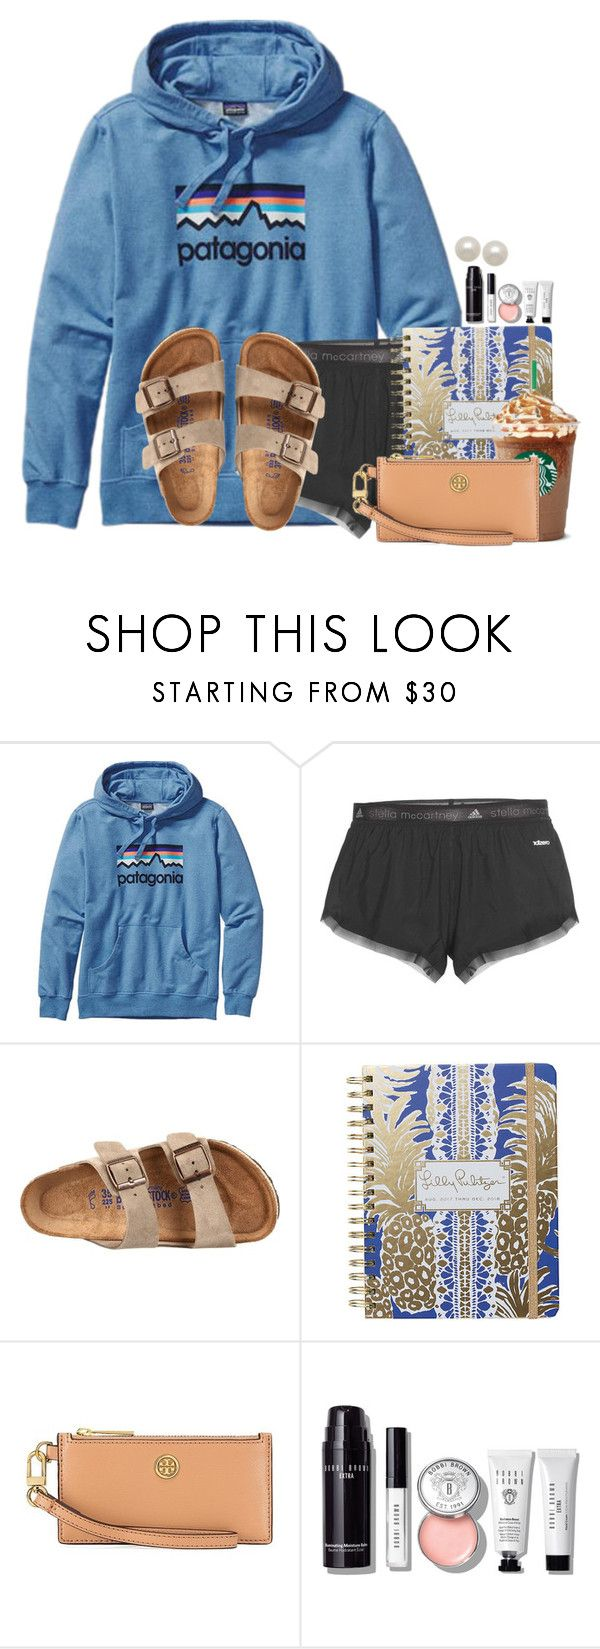 """Im exhausted..."" by annaewakefield ❤ liked on Polyvore featuring Patagonia, adidas, Birkenstock, Lilly Pulitzer, Tory Burch, Bobbi Brown Cosmetics and Honora"